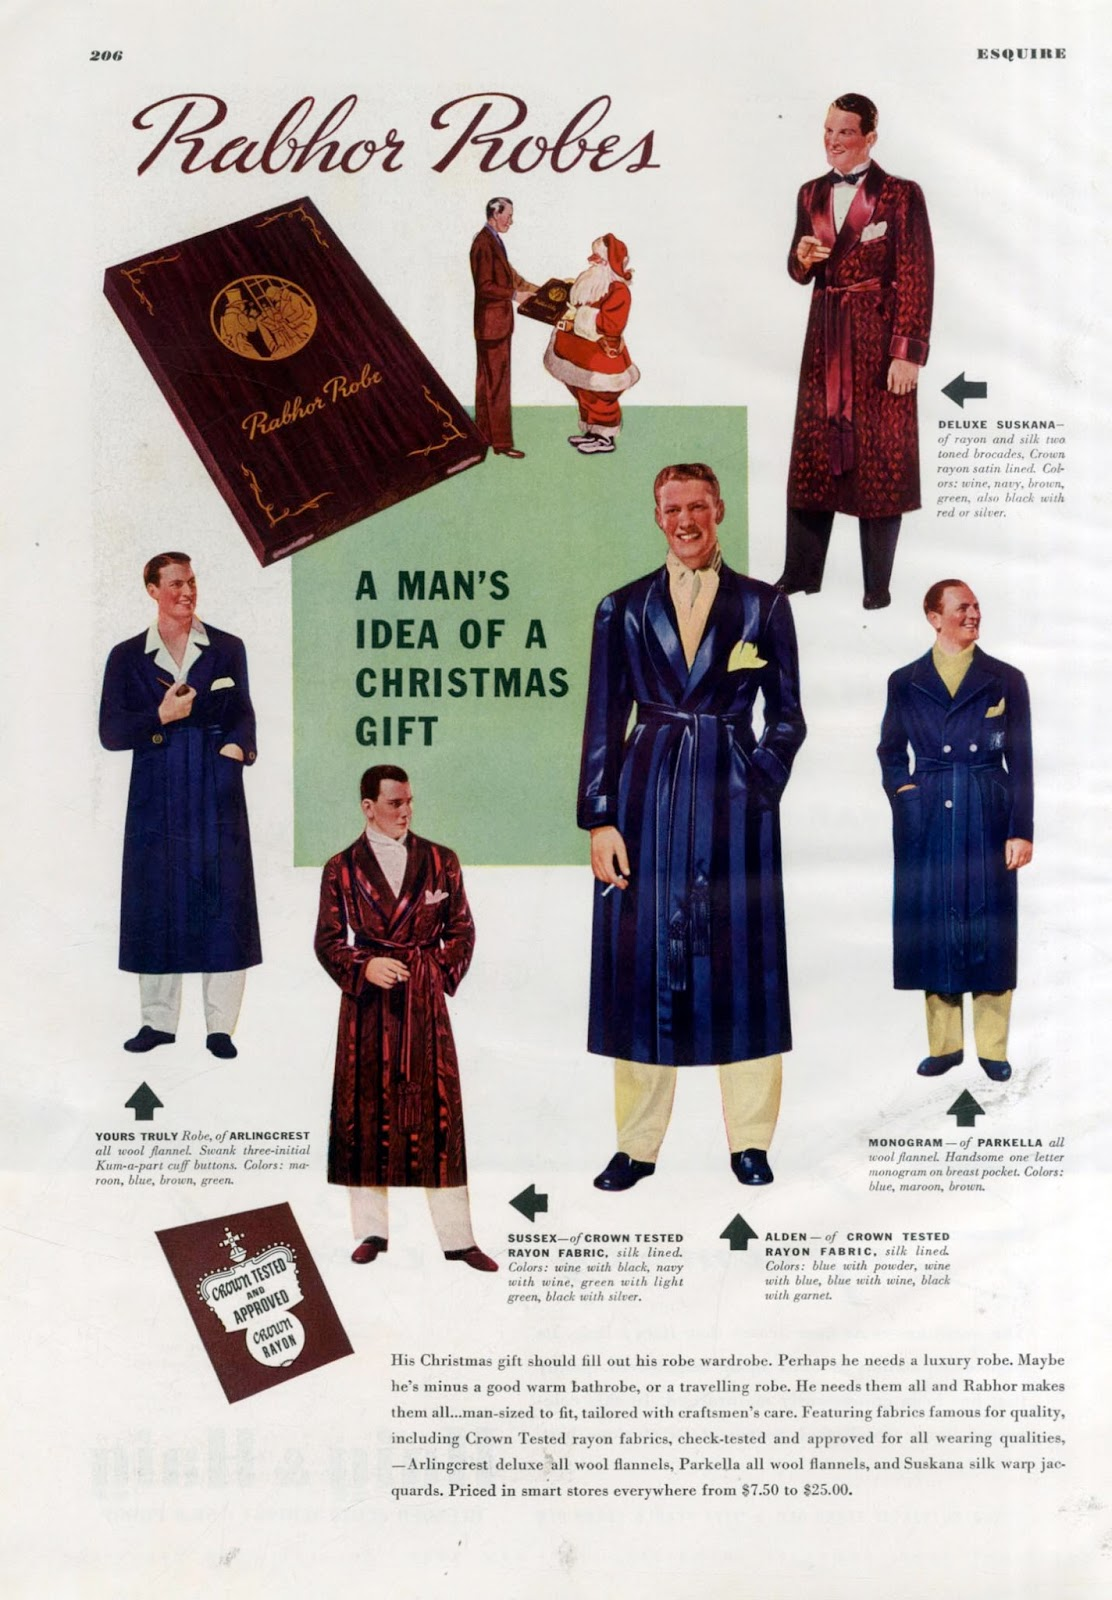 The Visual Primer Of Advertising Cliches Rabhor Robes December Austin Sandal Mitzi Silver 1938 A Mans Idea Christmas Gift